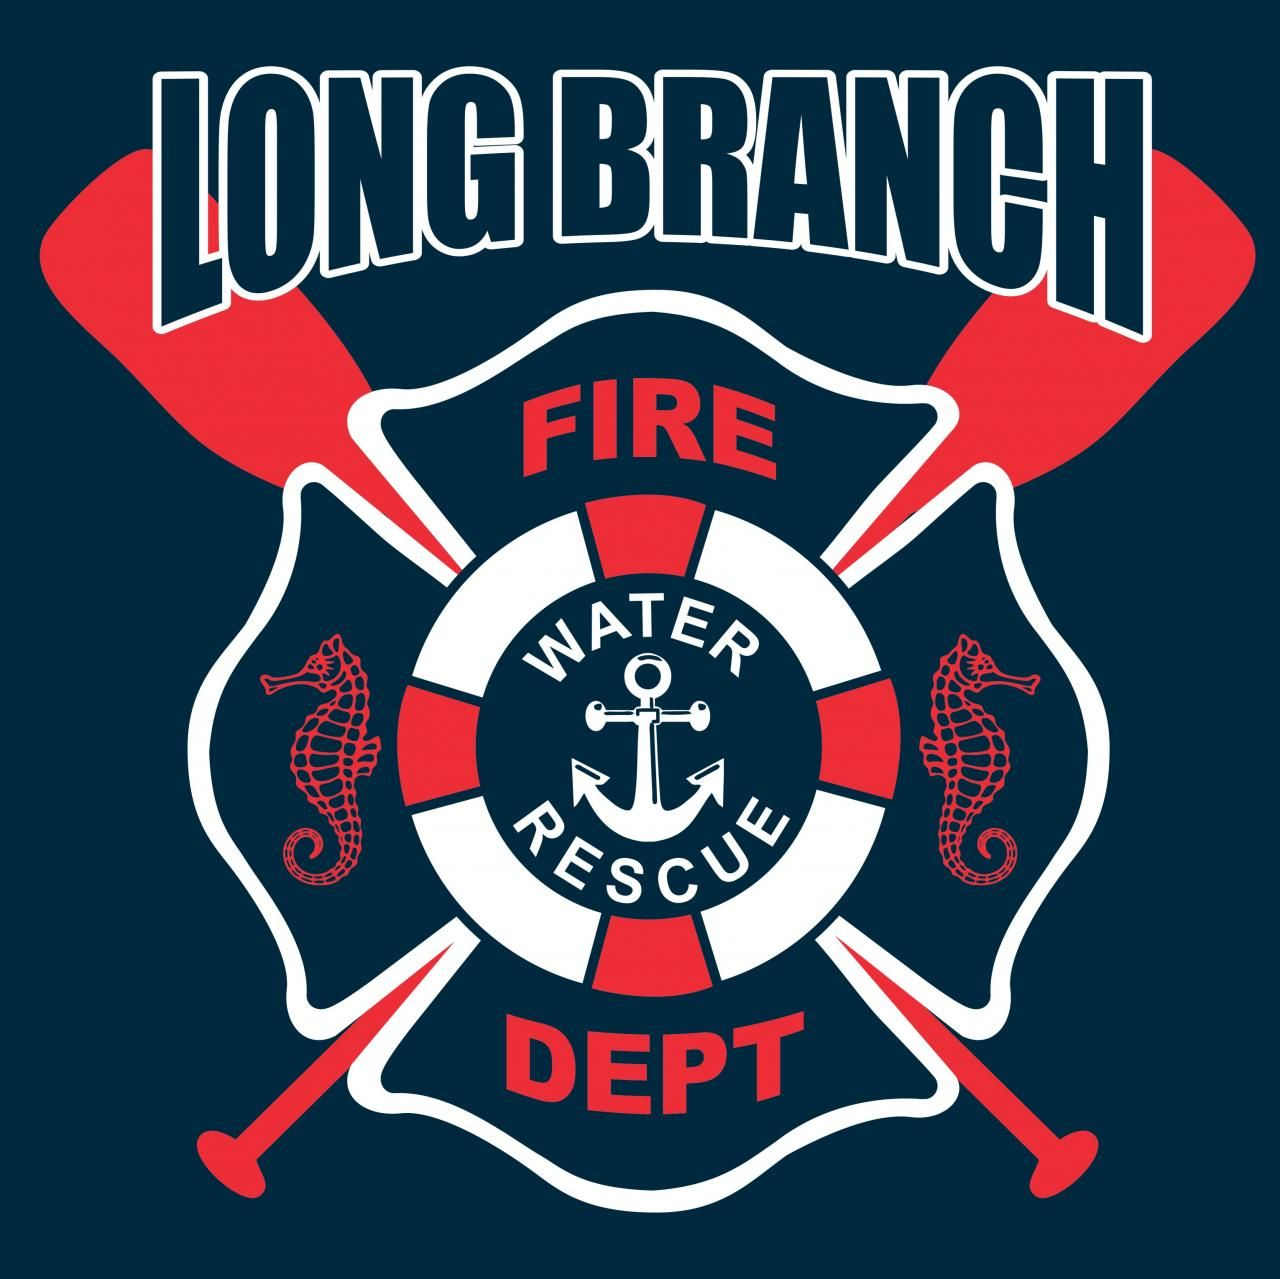 Pin by BigRed on Fire Patches. Water rescue, Patch logo